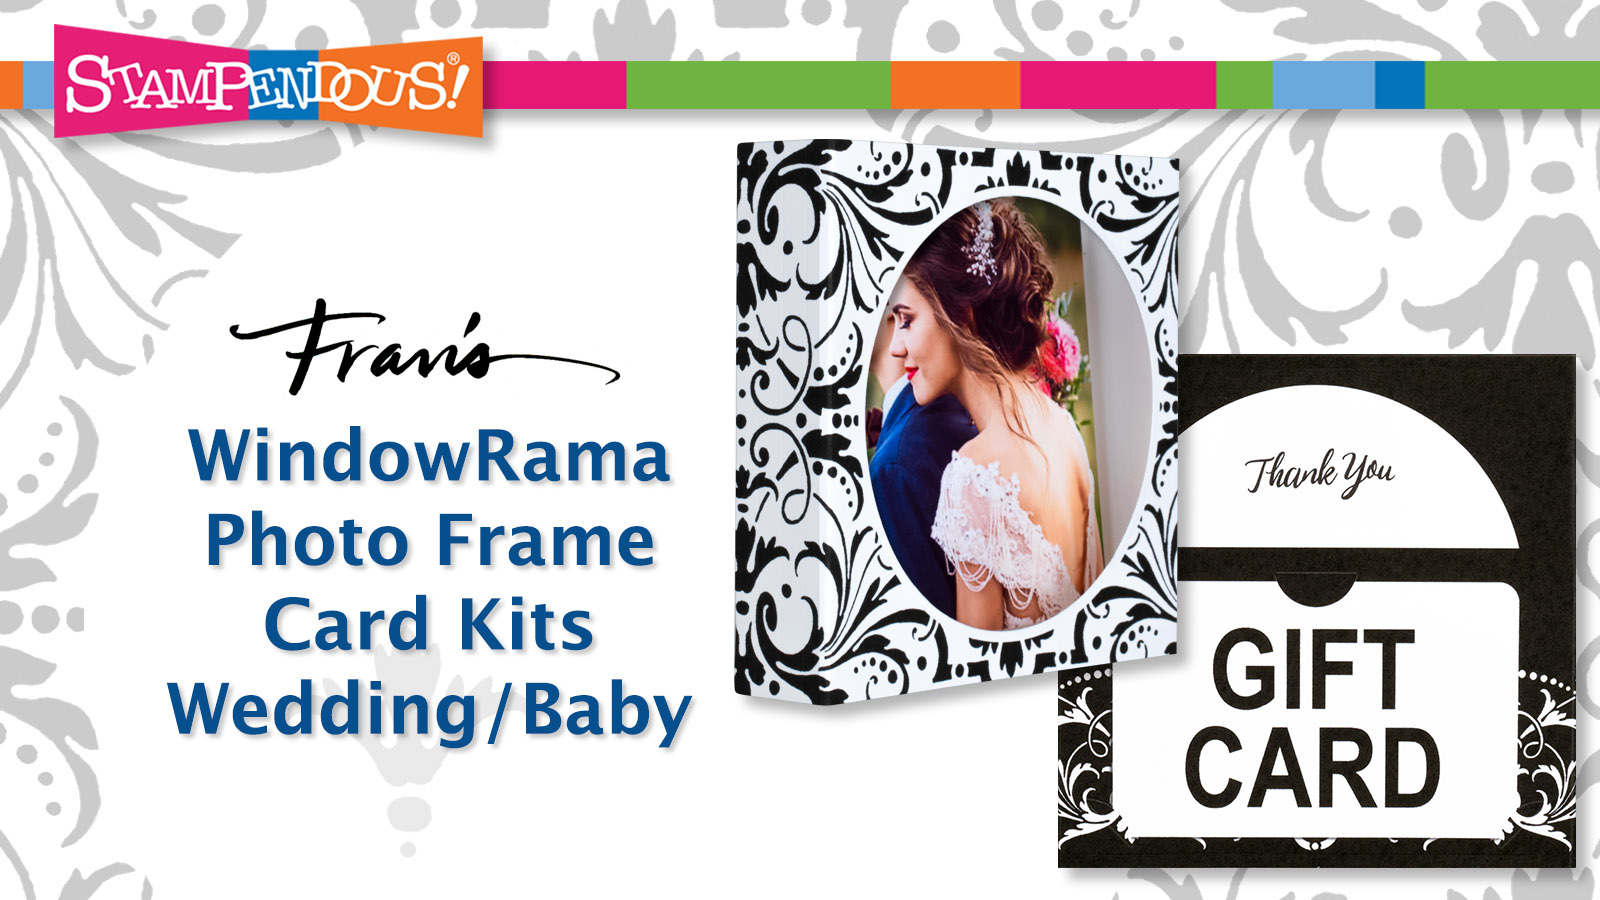 WindowRama Photo Frame Cards Kits advertisement by Stampendous for card making and scrapbooking